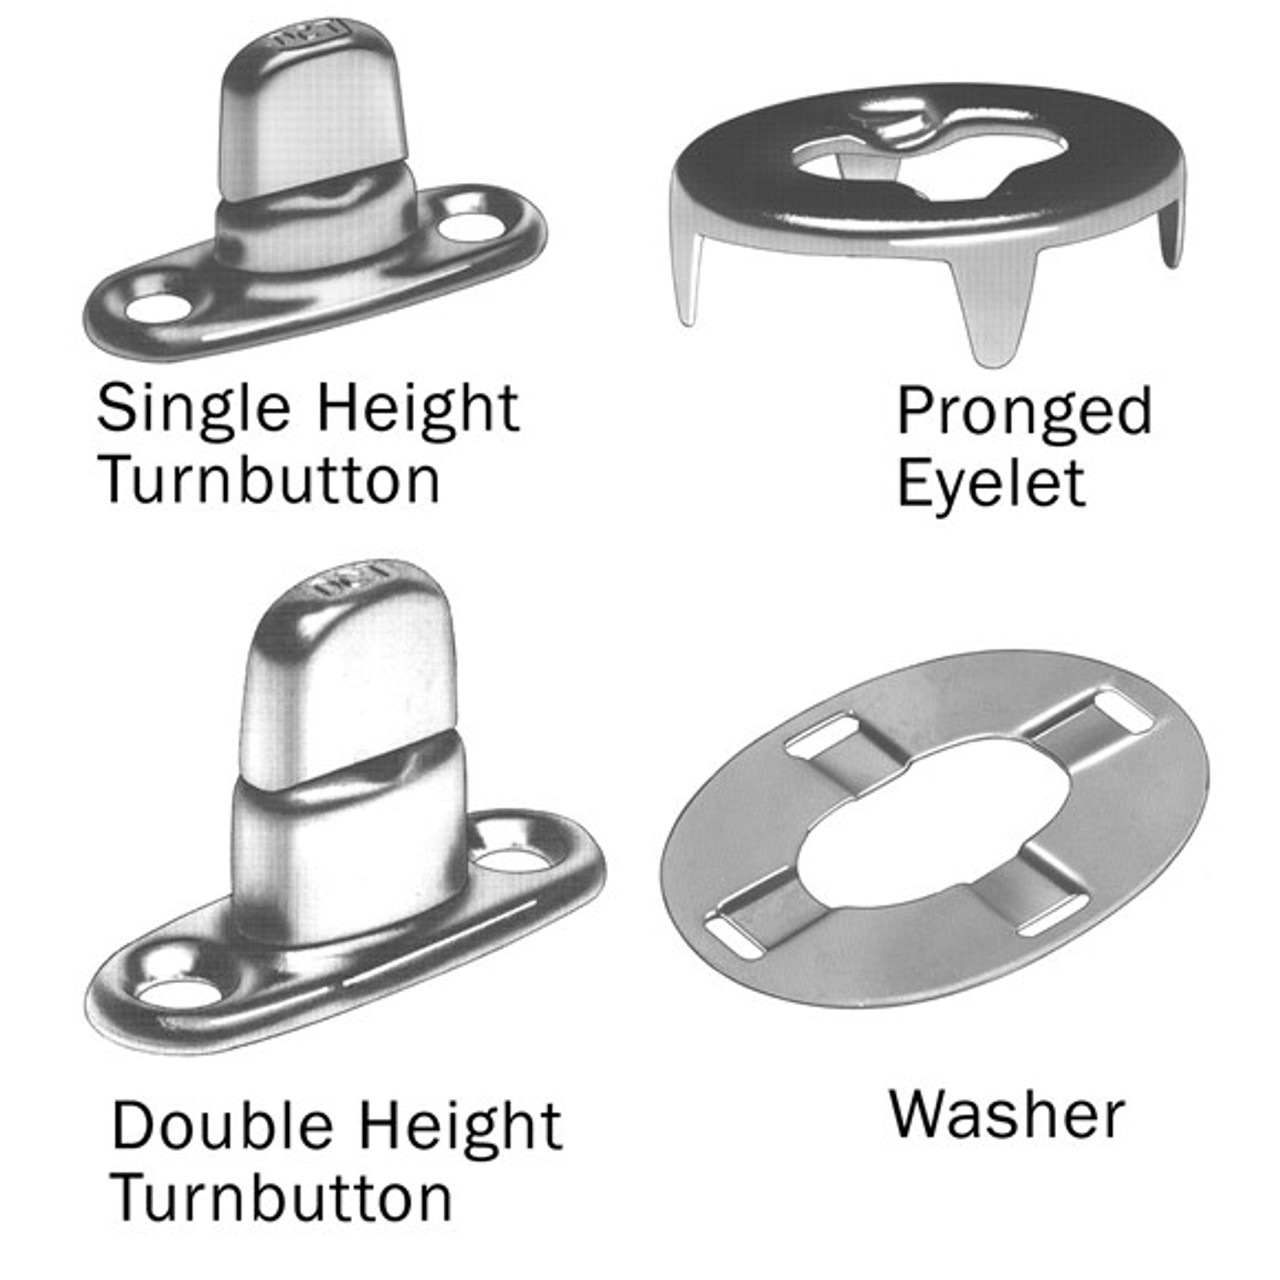 Turn Buckle Parts